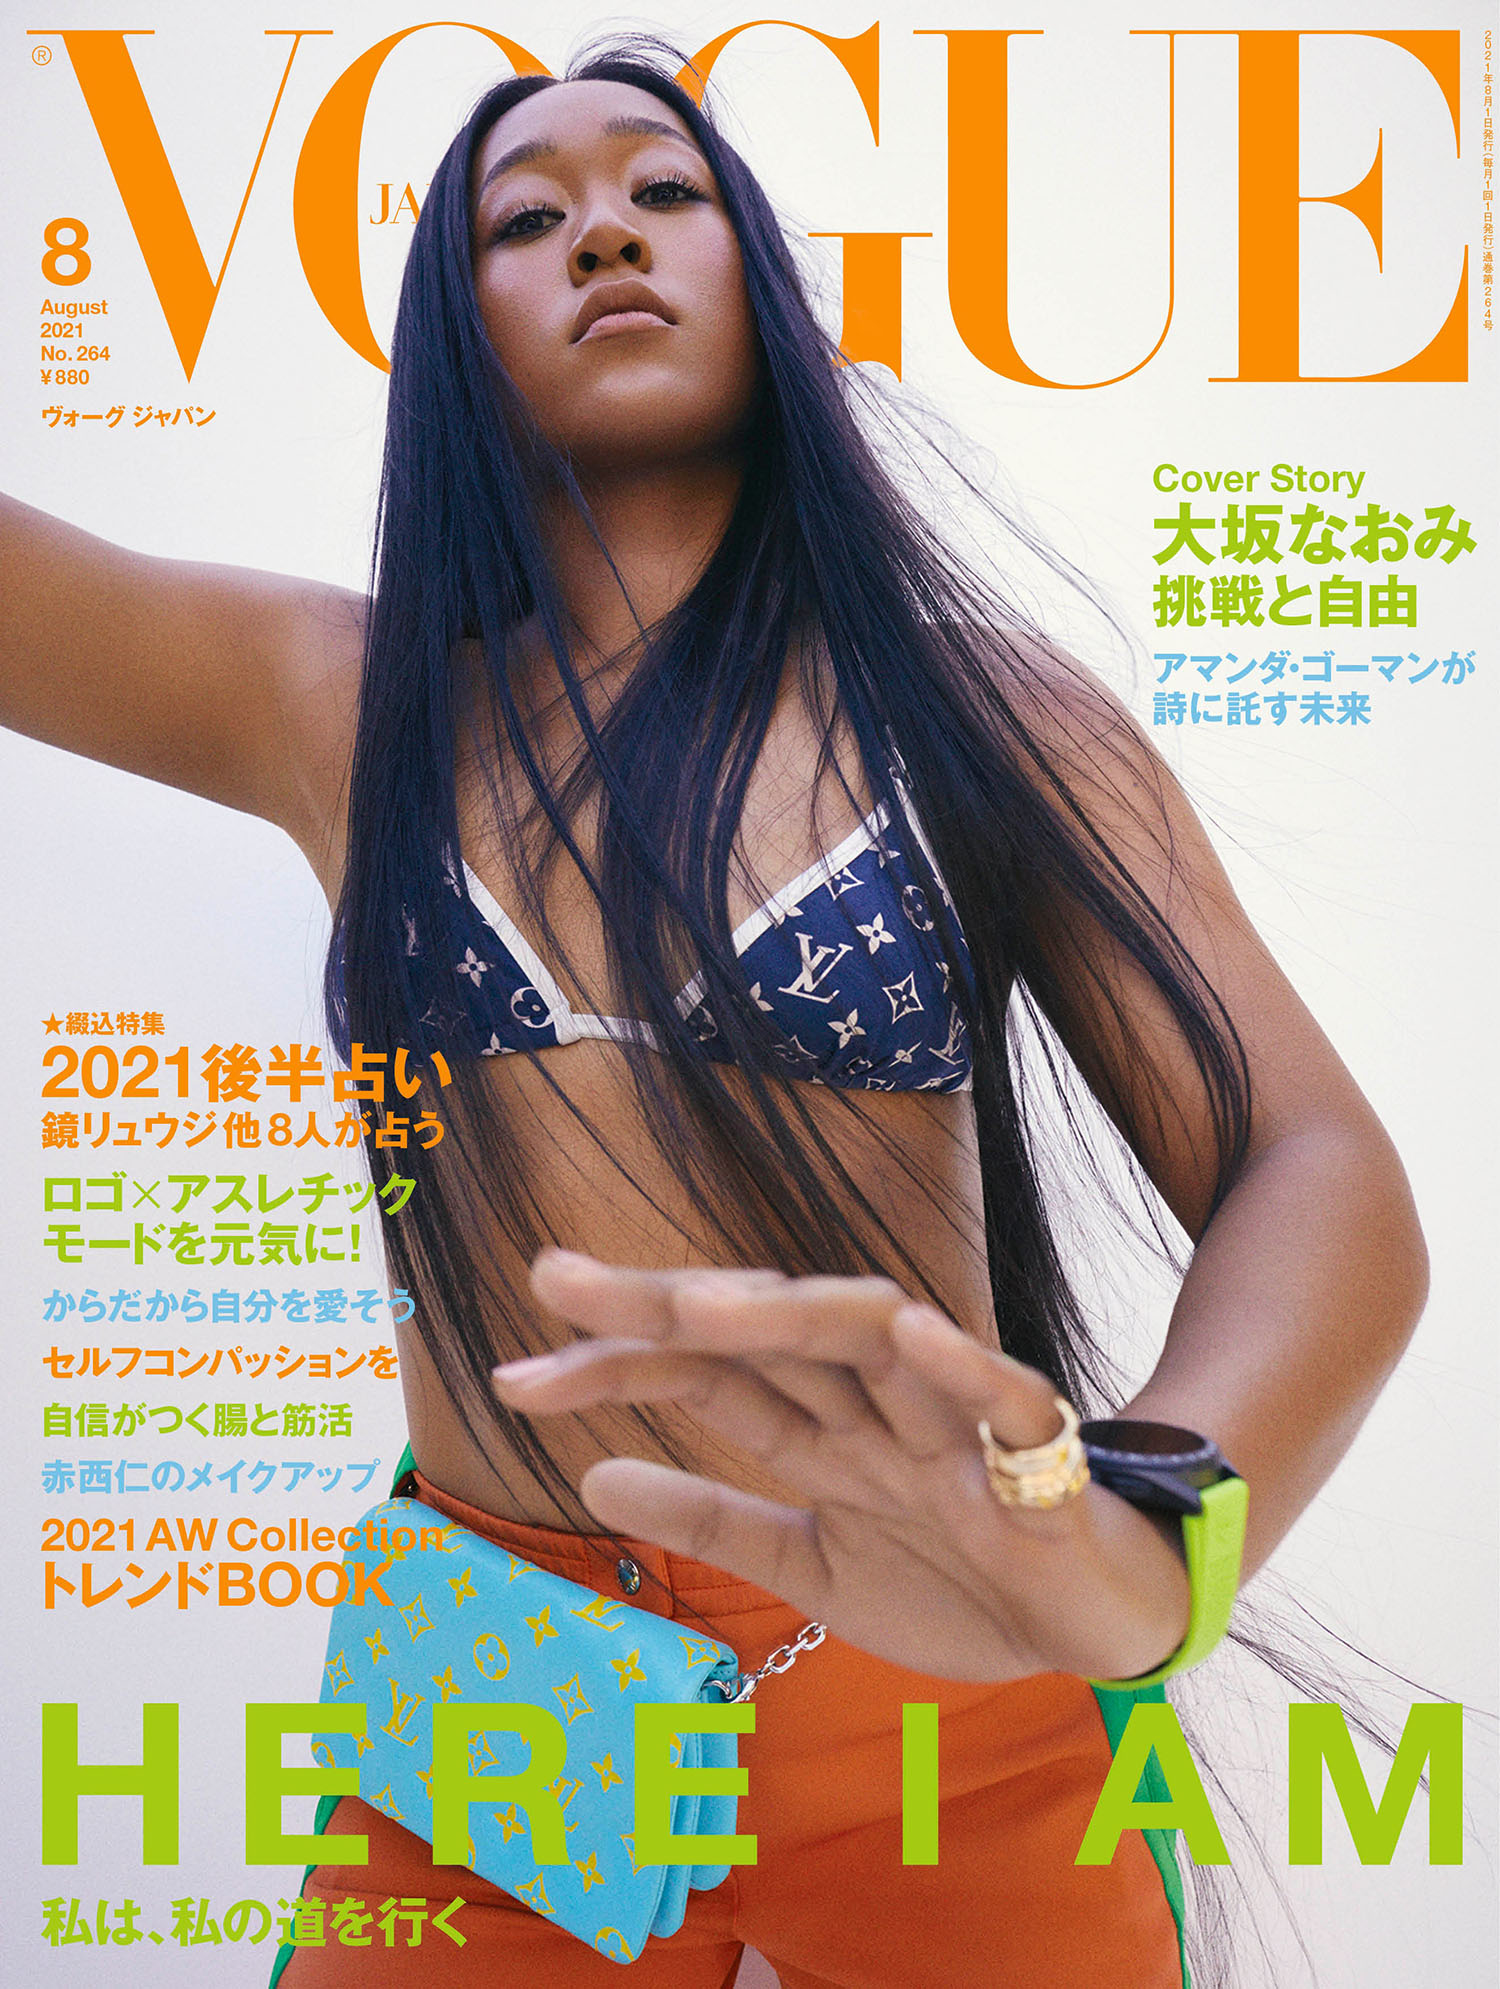 Naomi Osaka covers Vogue Japan August 2021 by Zoey Grossman